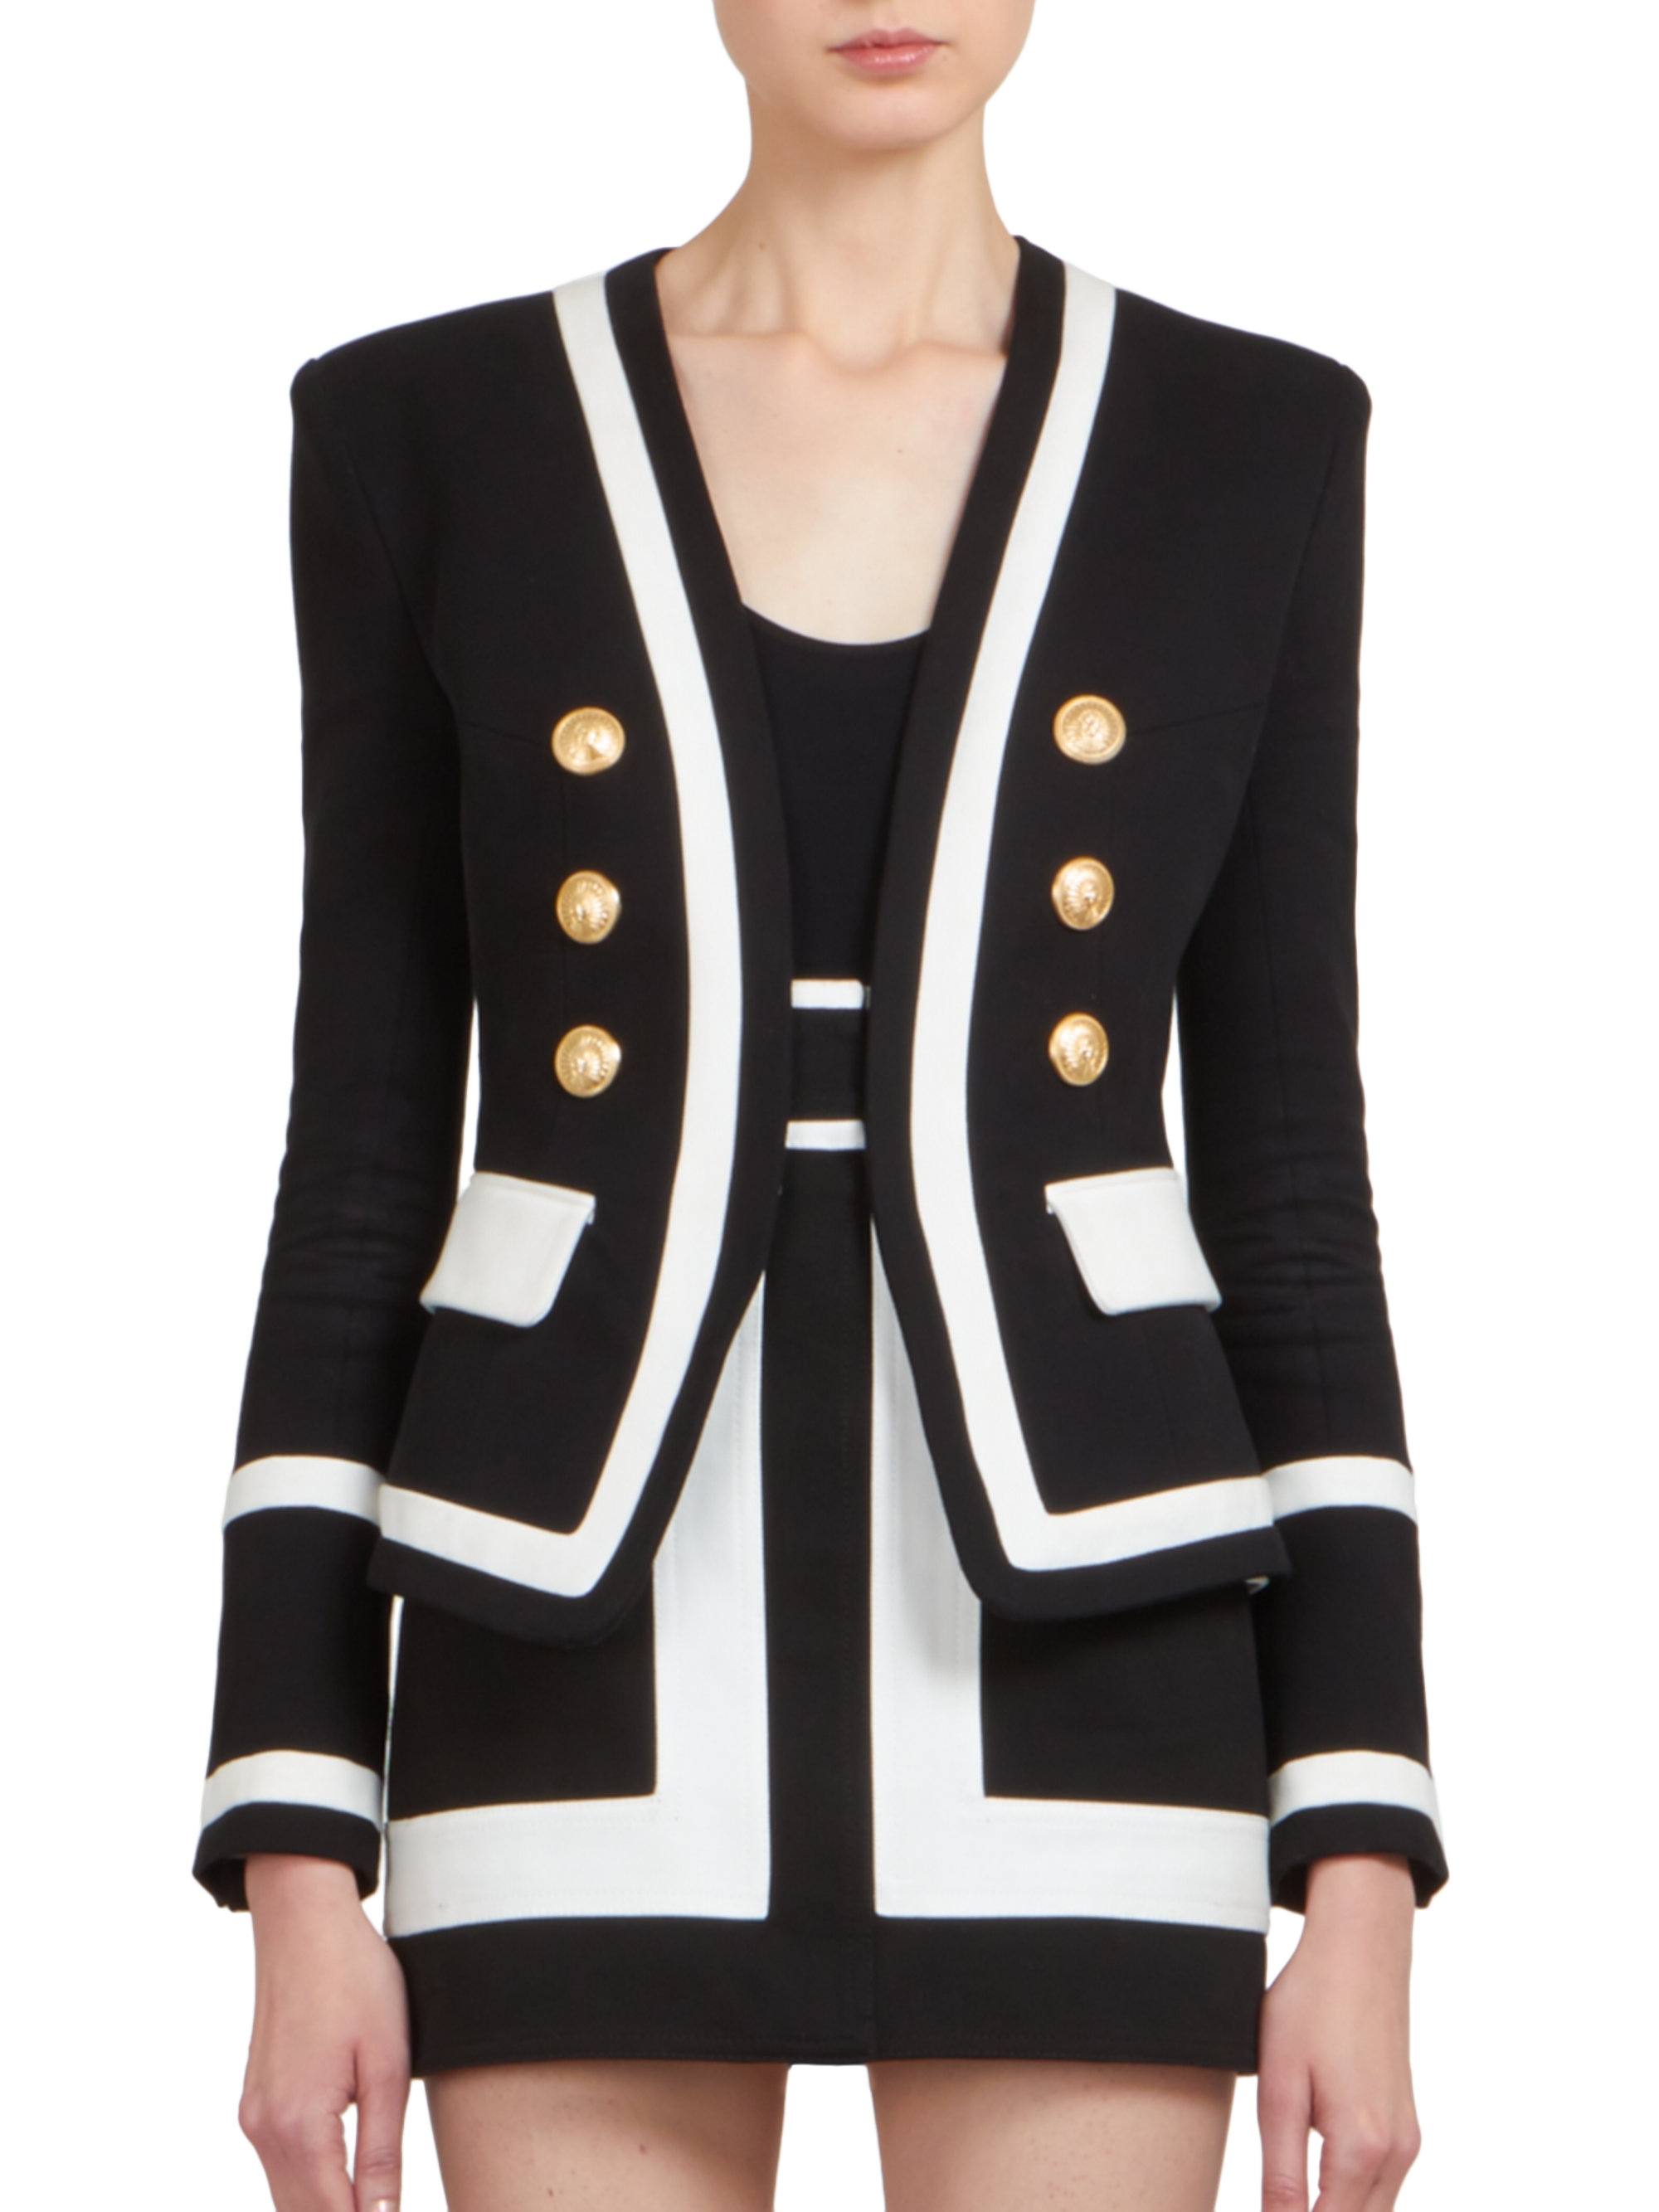 d766bf0c Balmain Black And White Military Blazer | HEWI London